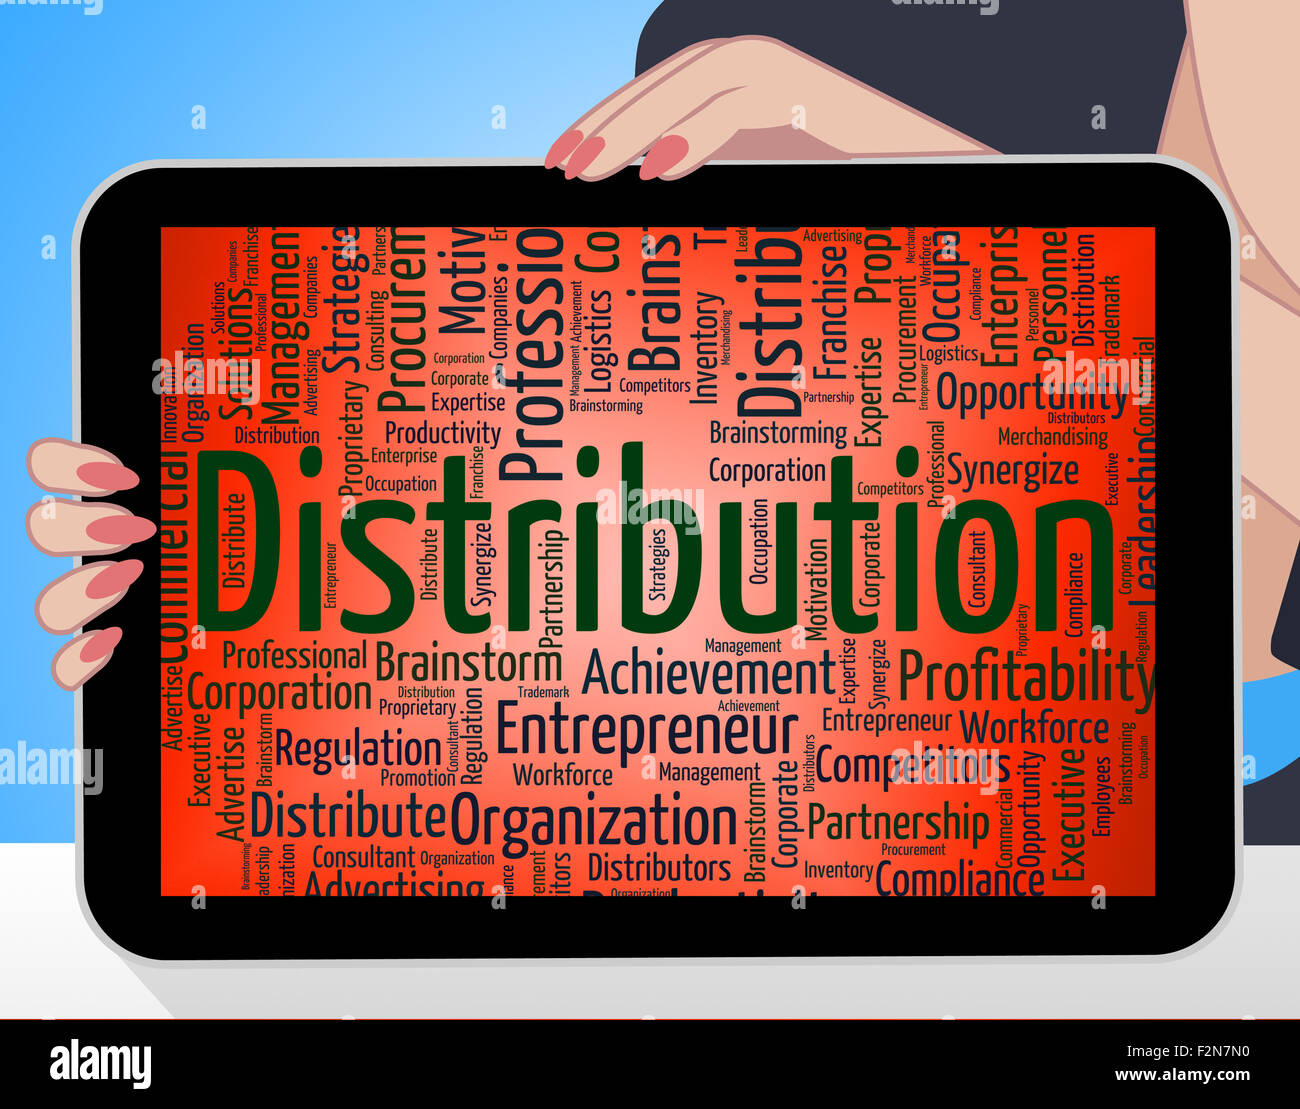 Distribution Logistics Meaning Supply Chain Stock Photos